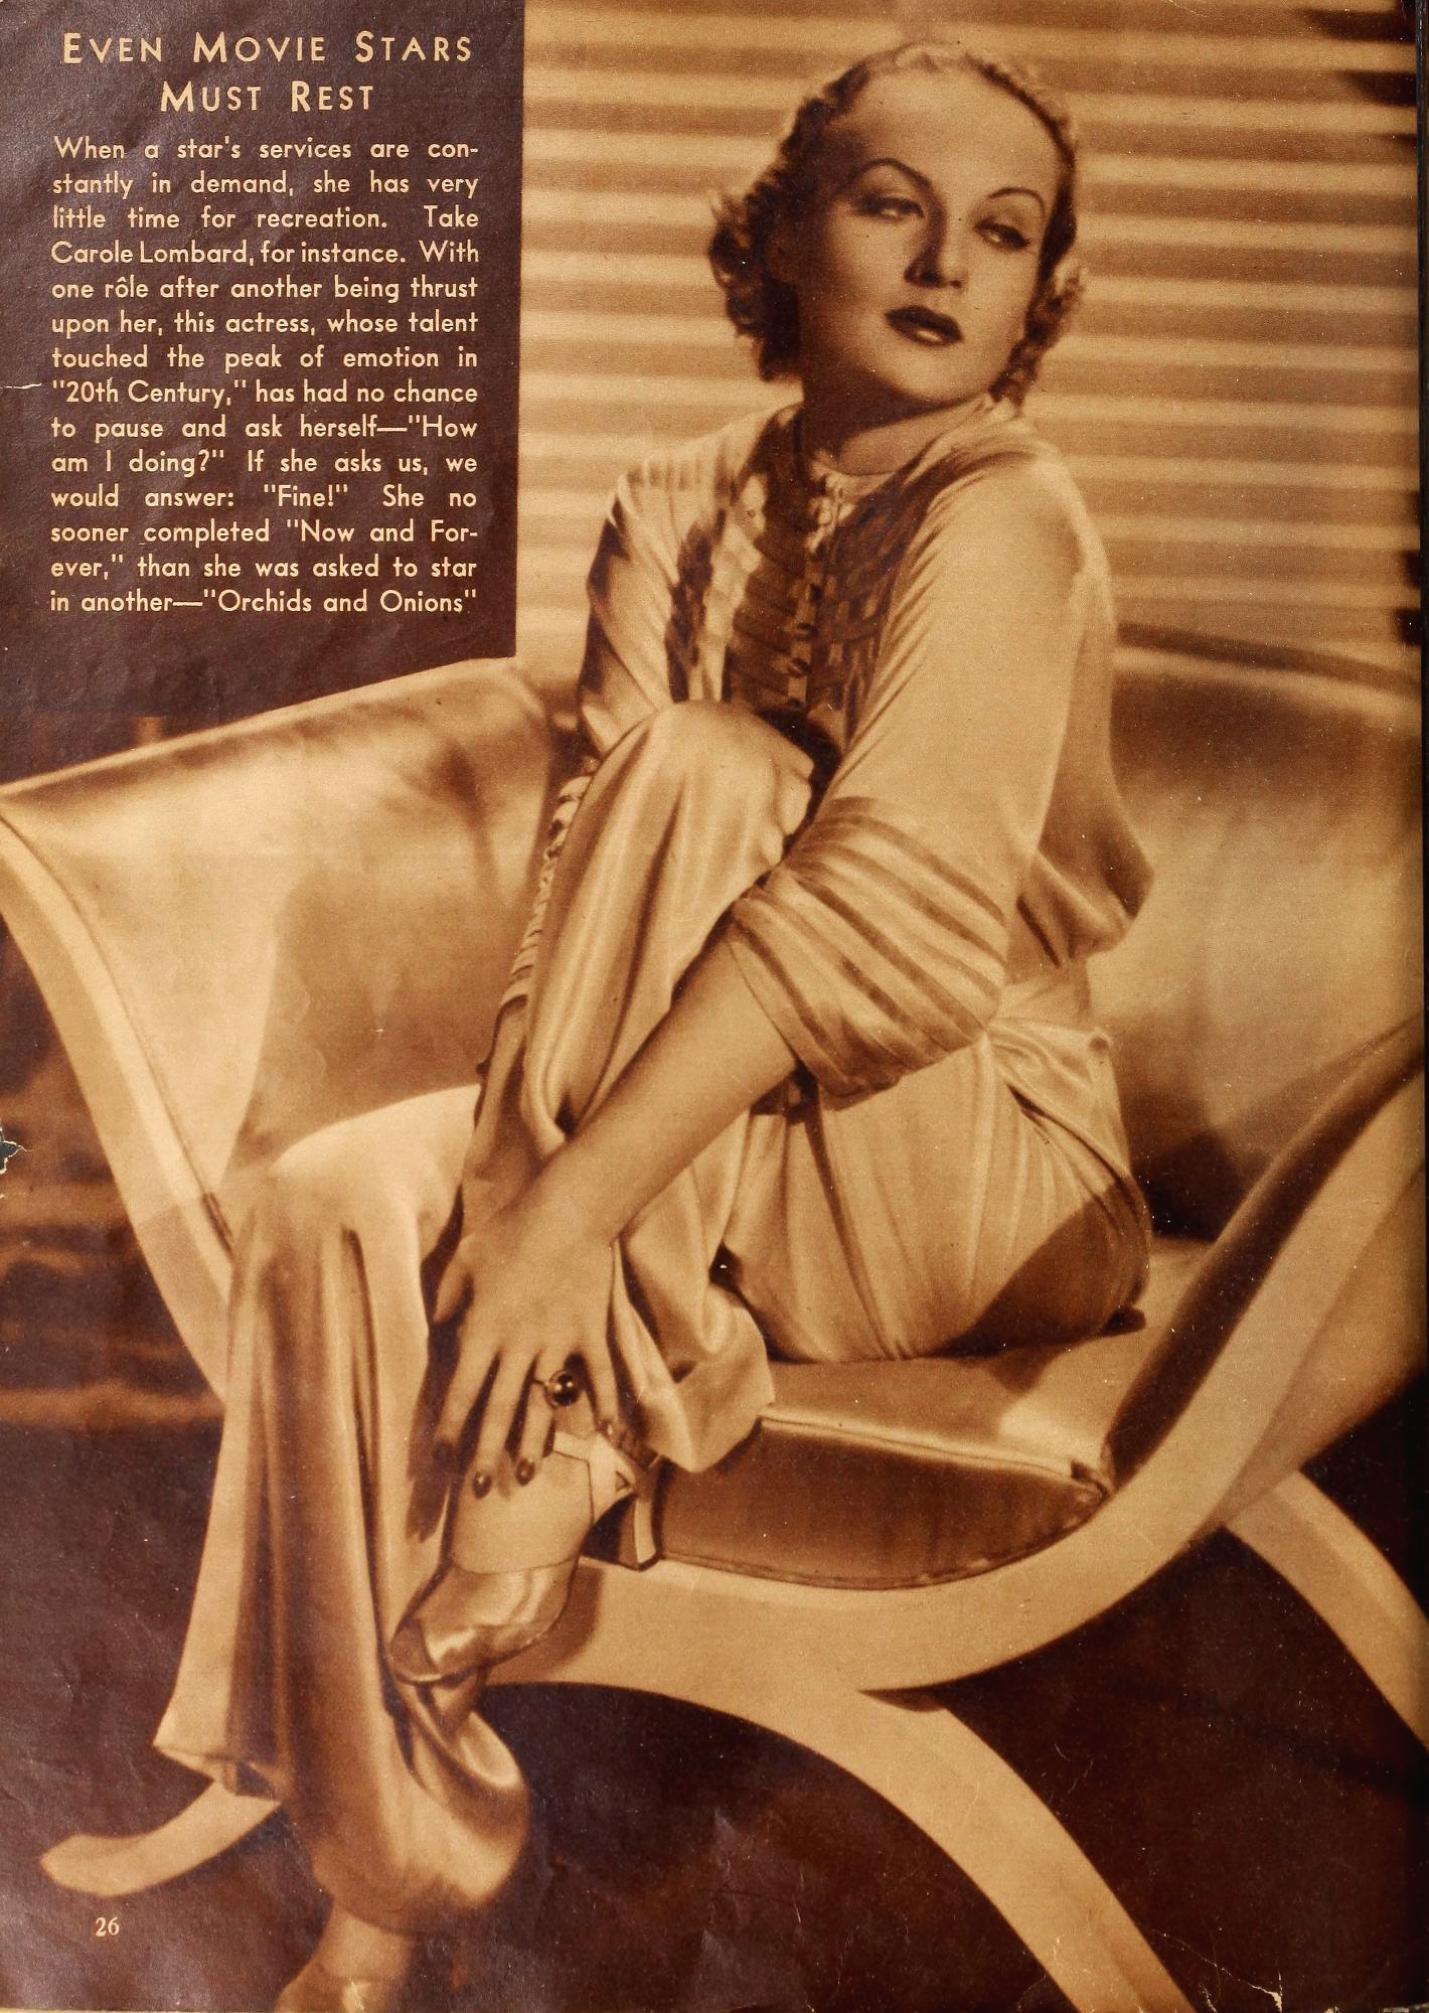 carole lombard movie classic october 1934aa